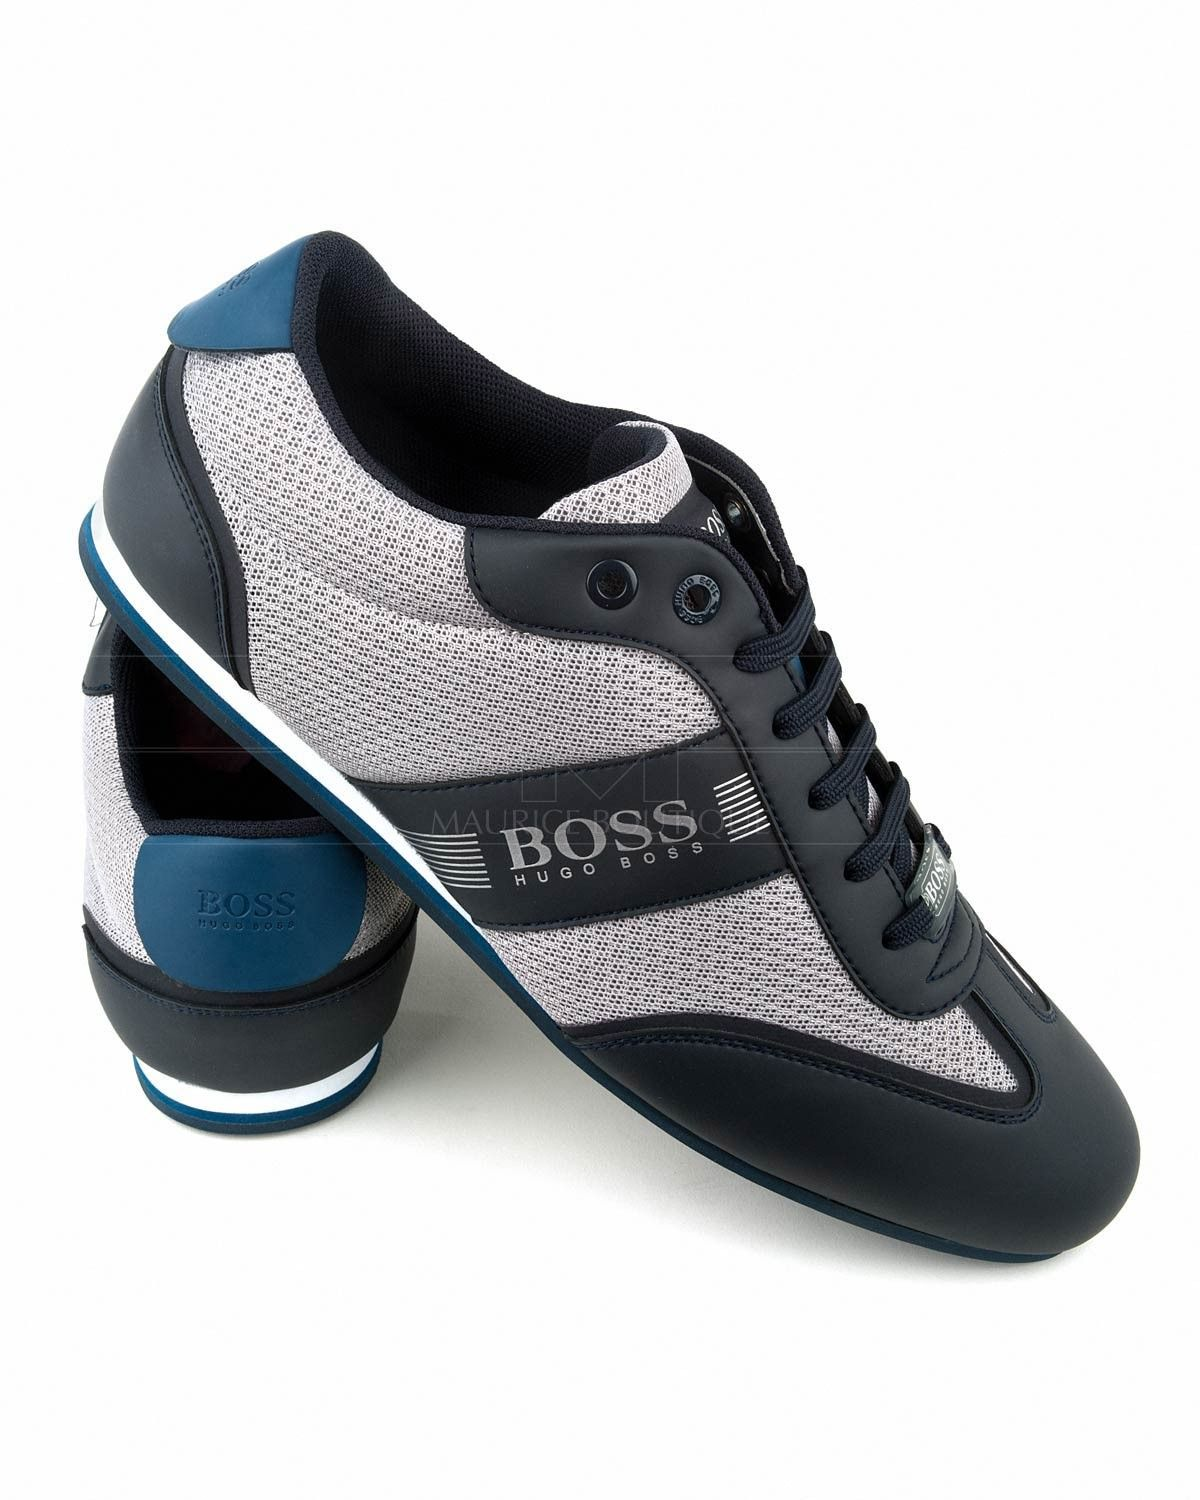 45fef9c33 Zapatos Hugo Boss Azul Marino - Lighter Lowp | tennis | Hugo boss ...